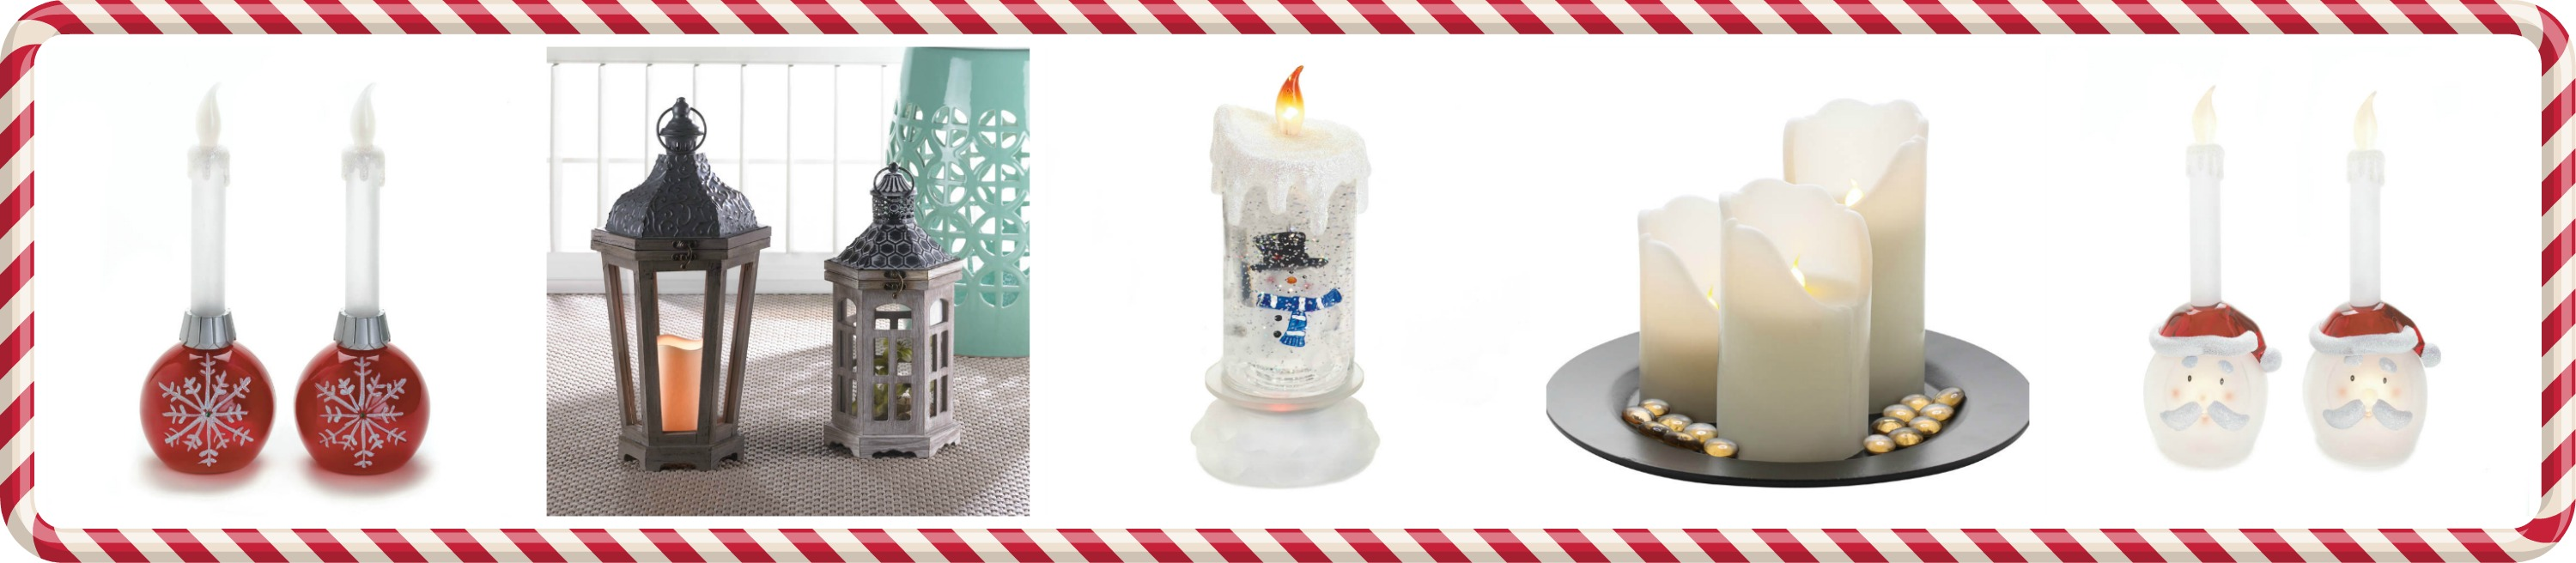 Wholesale product spotlight flameless christmas candle for Koehler home decor